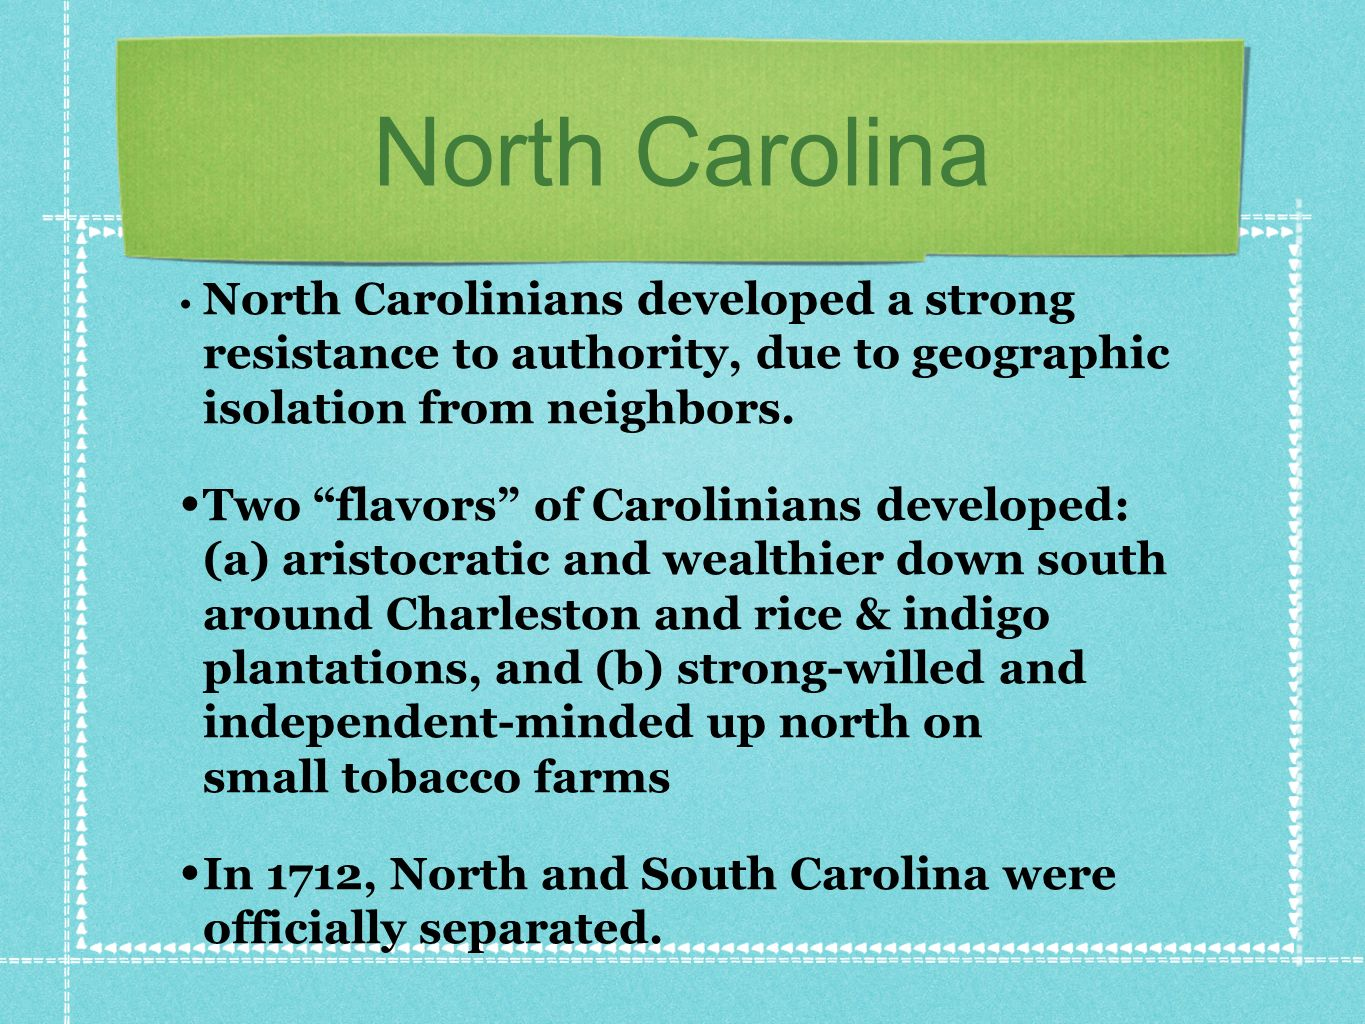 North Carolina North Carolinians developed a strong resistance to authority, due to geographic isolation from neighbors. Two flavors of Carolinians de